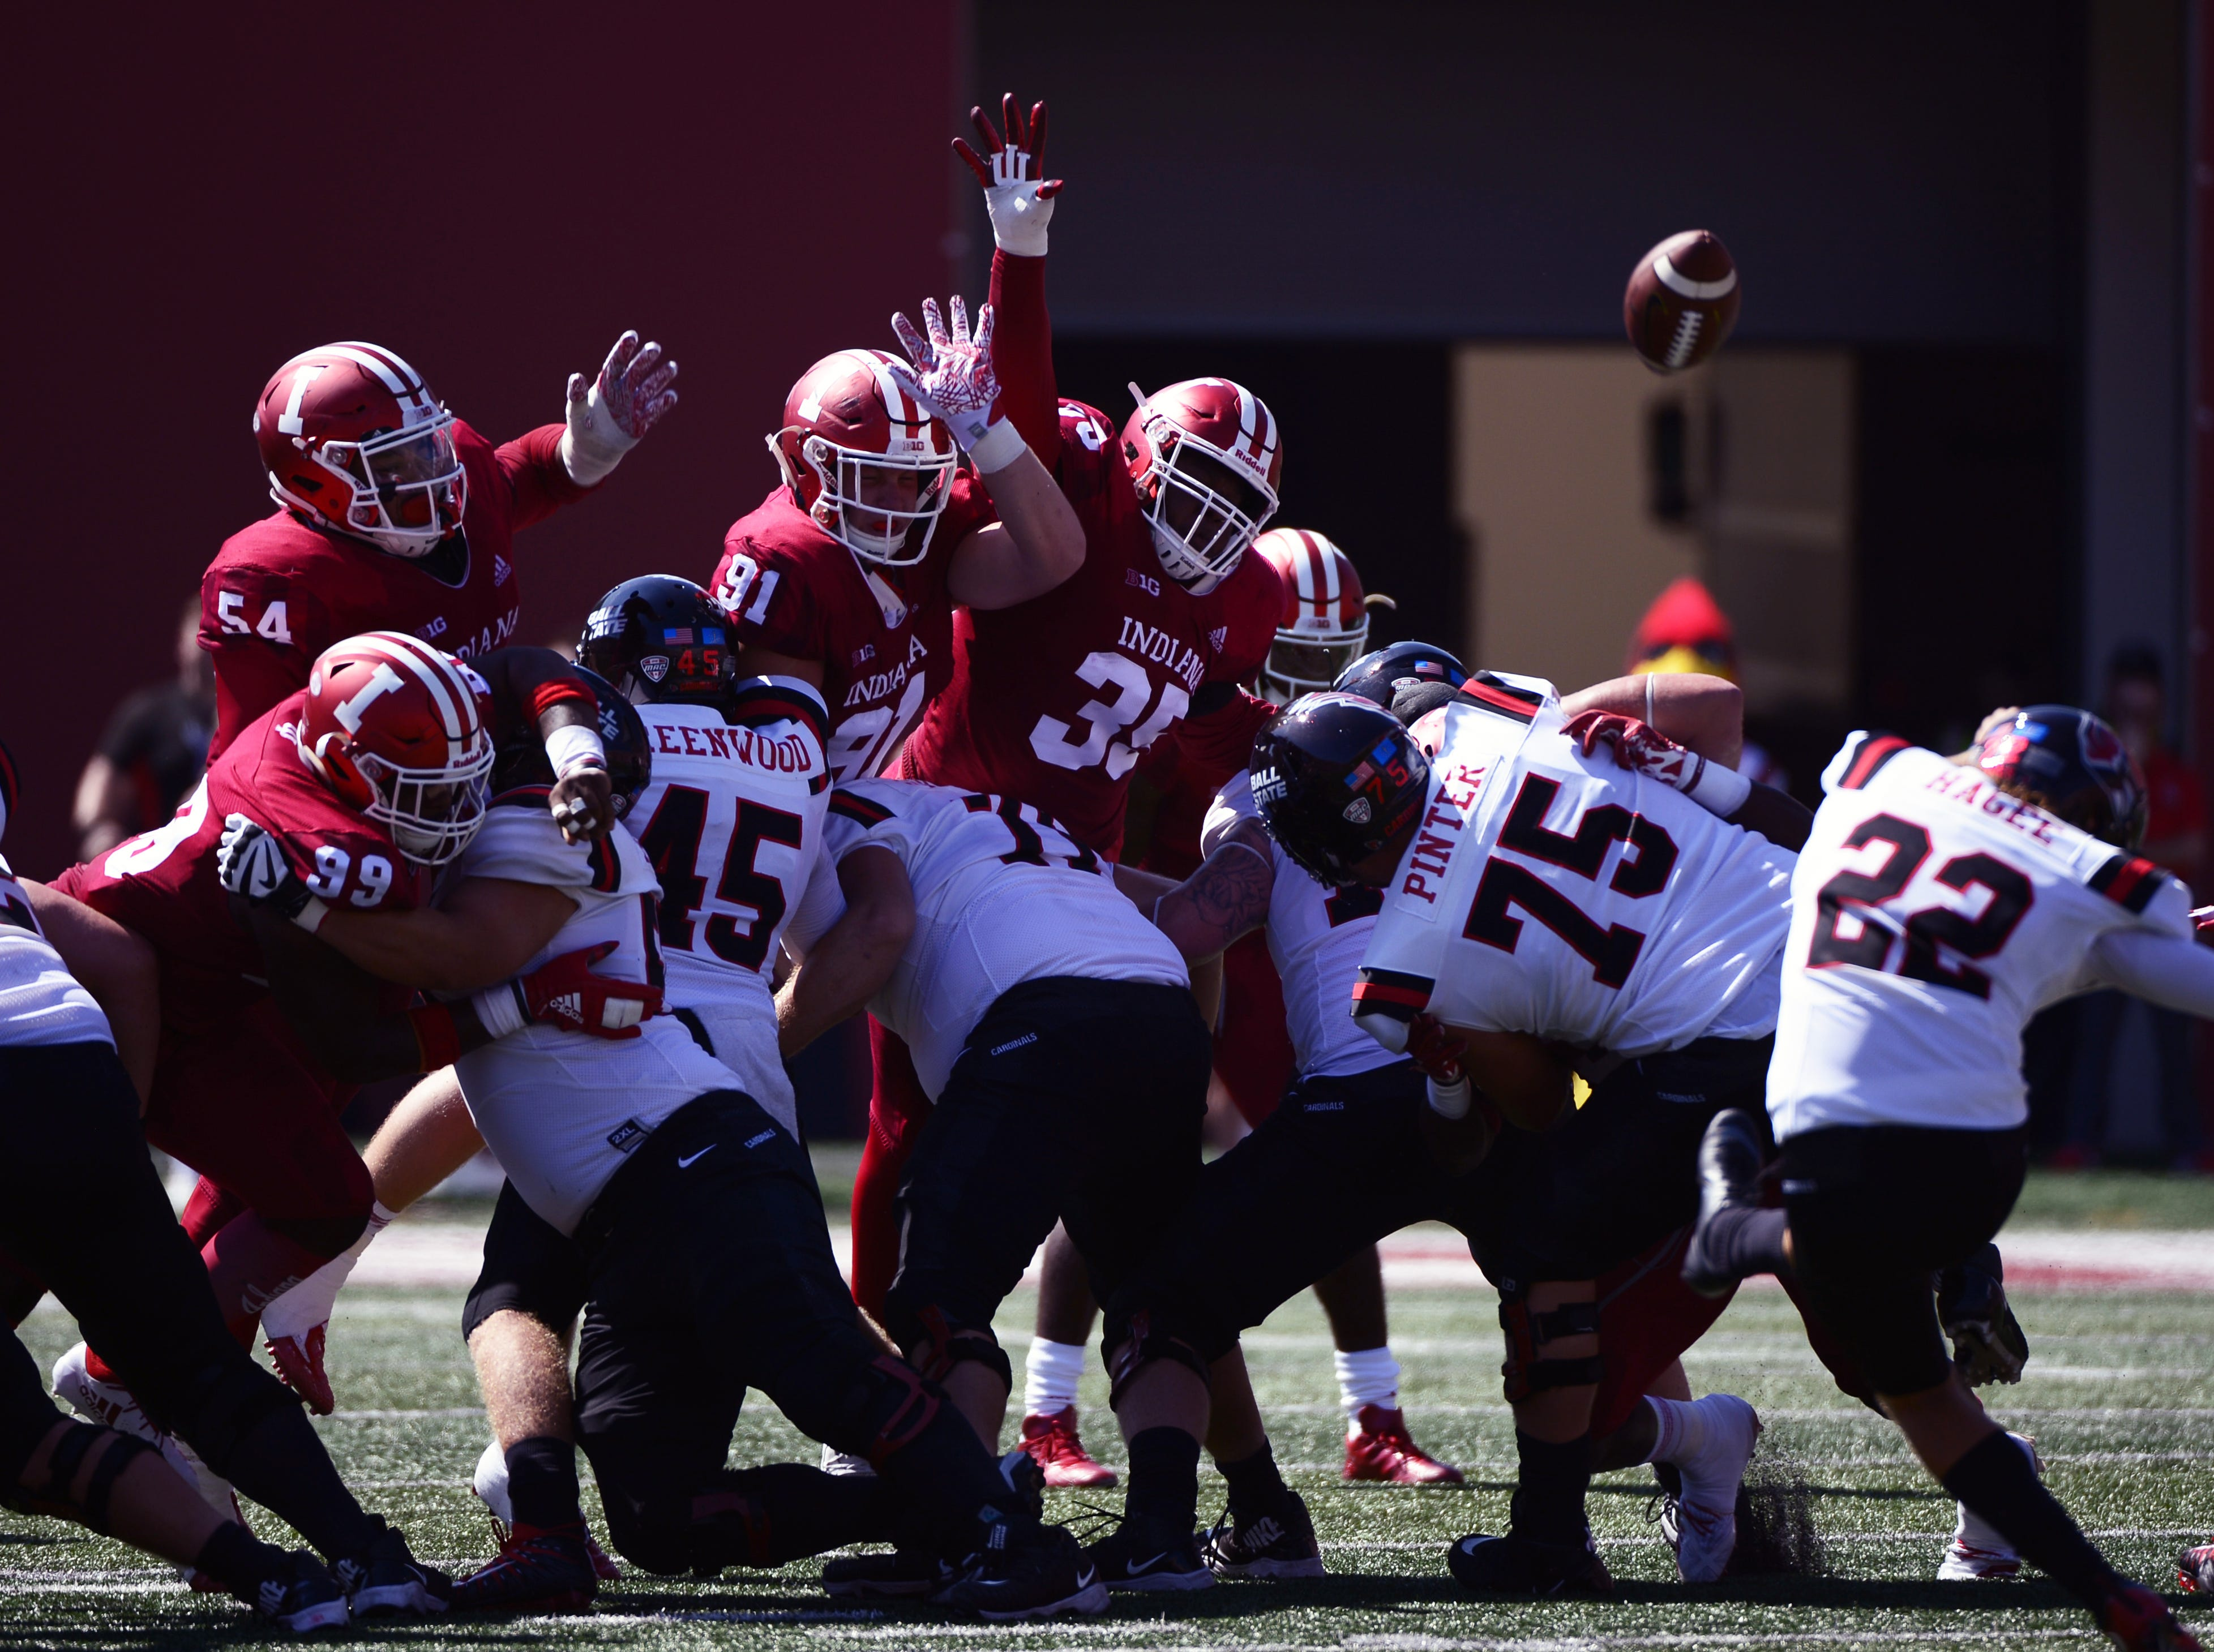 The Indiana Hoosiers defensive line tries to block a kick during the game against Ball State at Memorial Stadium in Bloomington, Ind., on Saturday, Sept. 15, 2018.